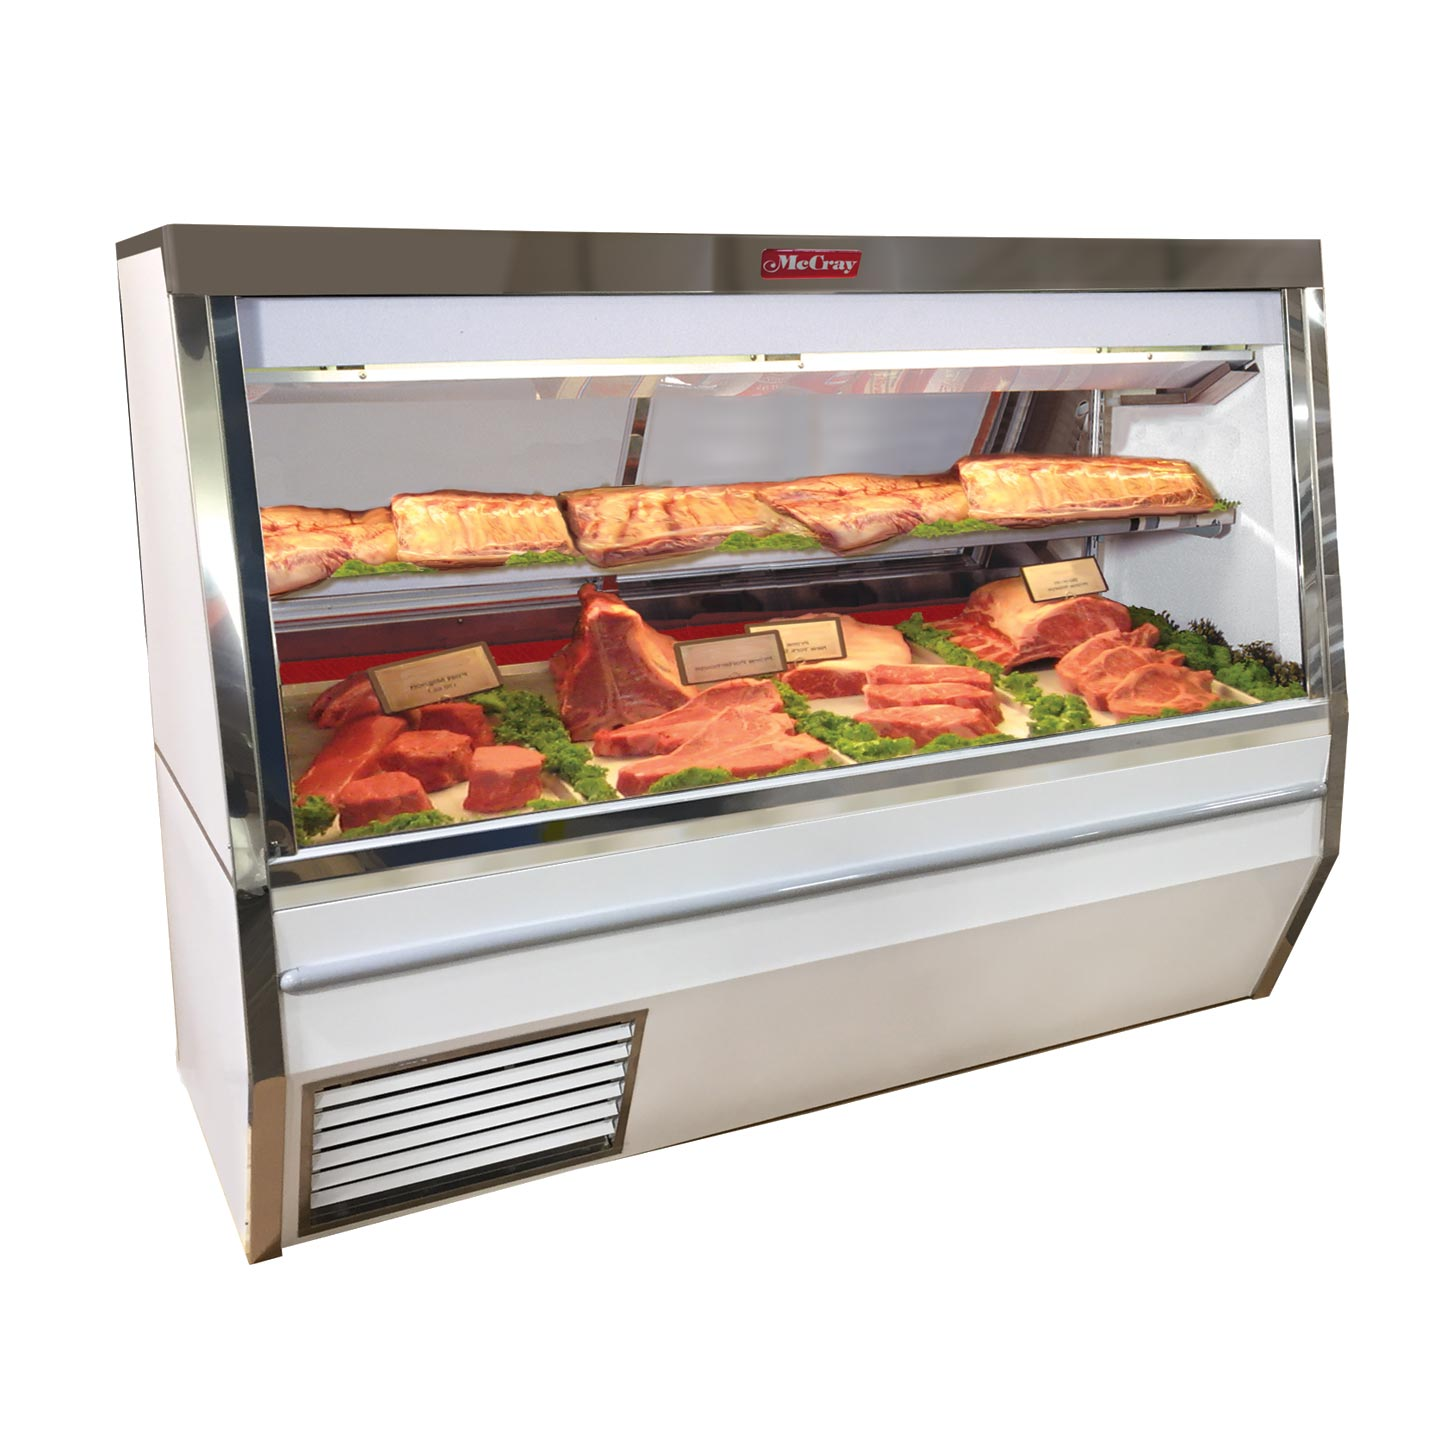 Howard-McCray R-CMS34N-8-BE-LED display case, red meat deli